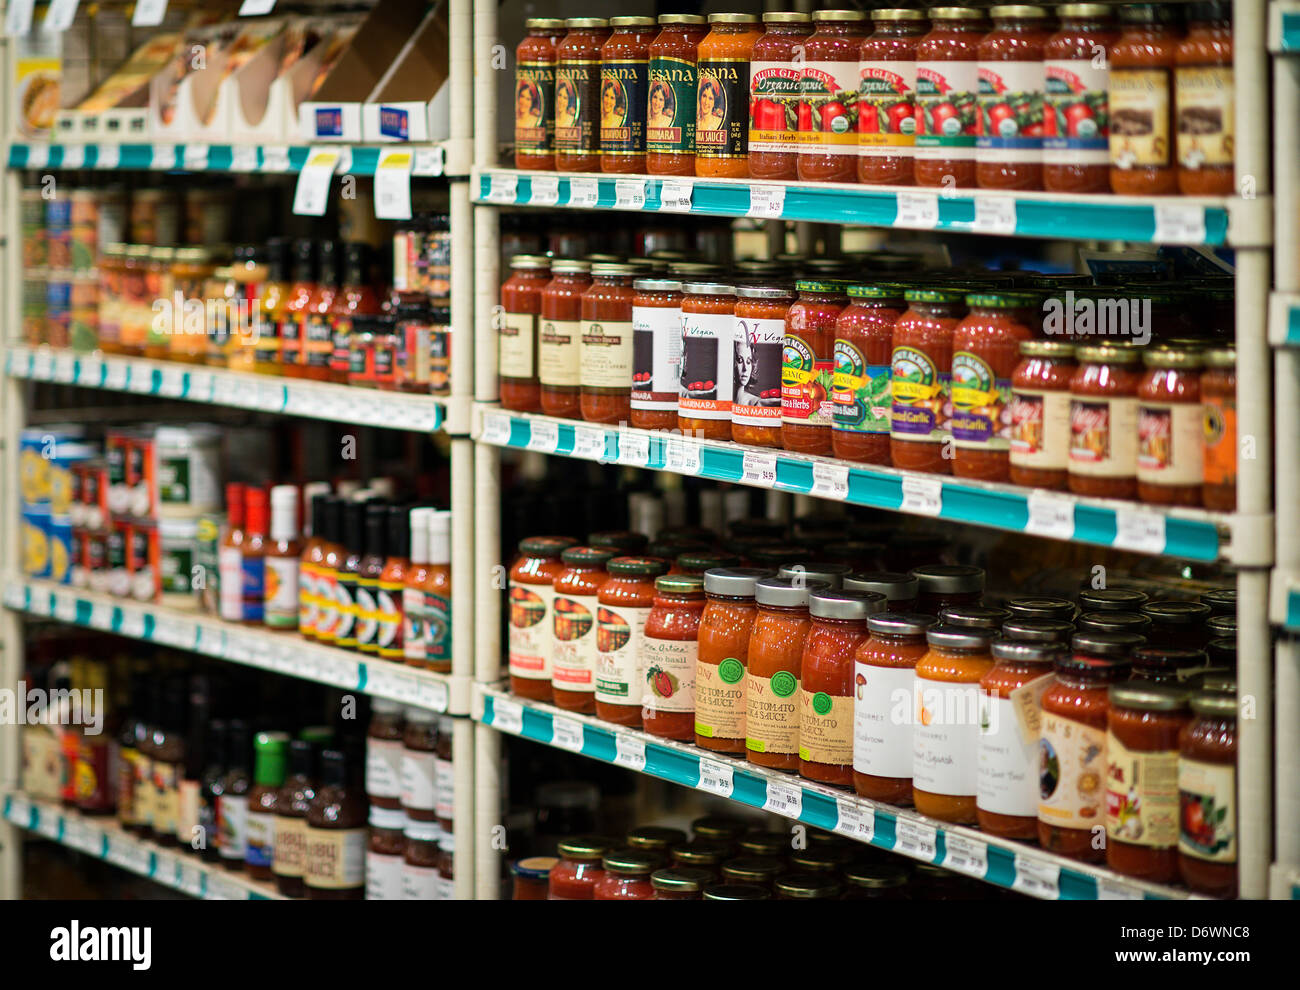 Specialty food store shelf. - Stock Image